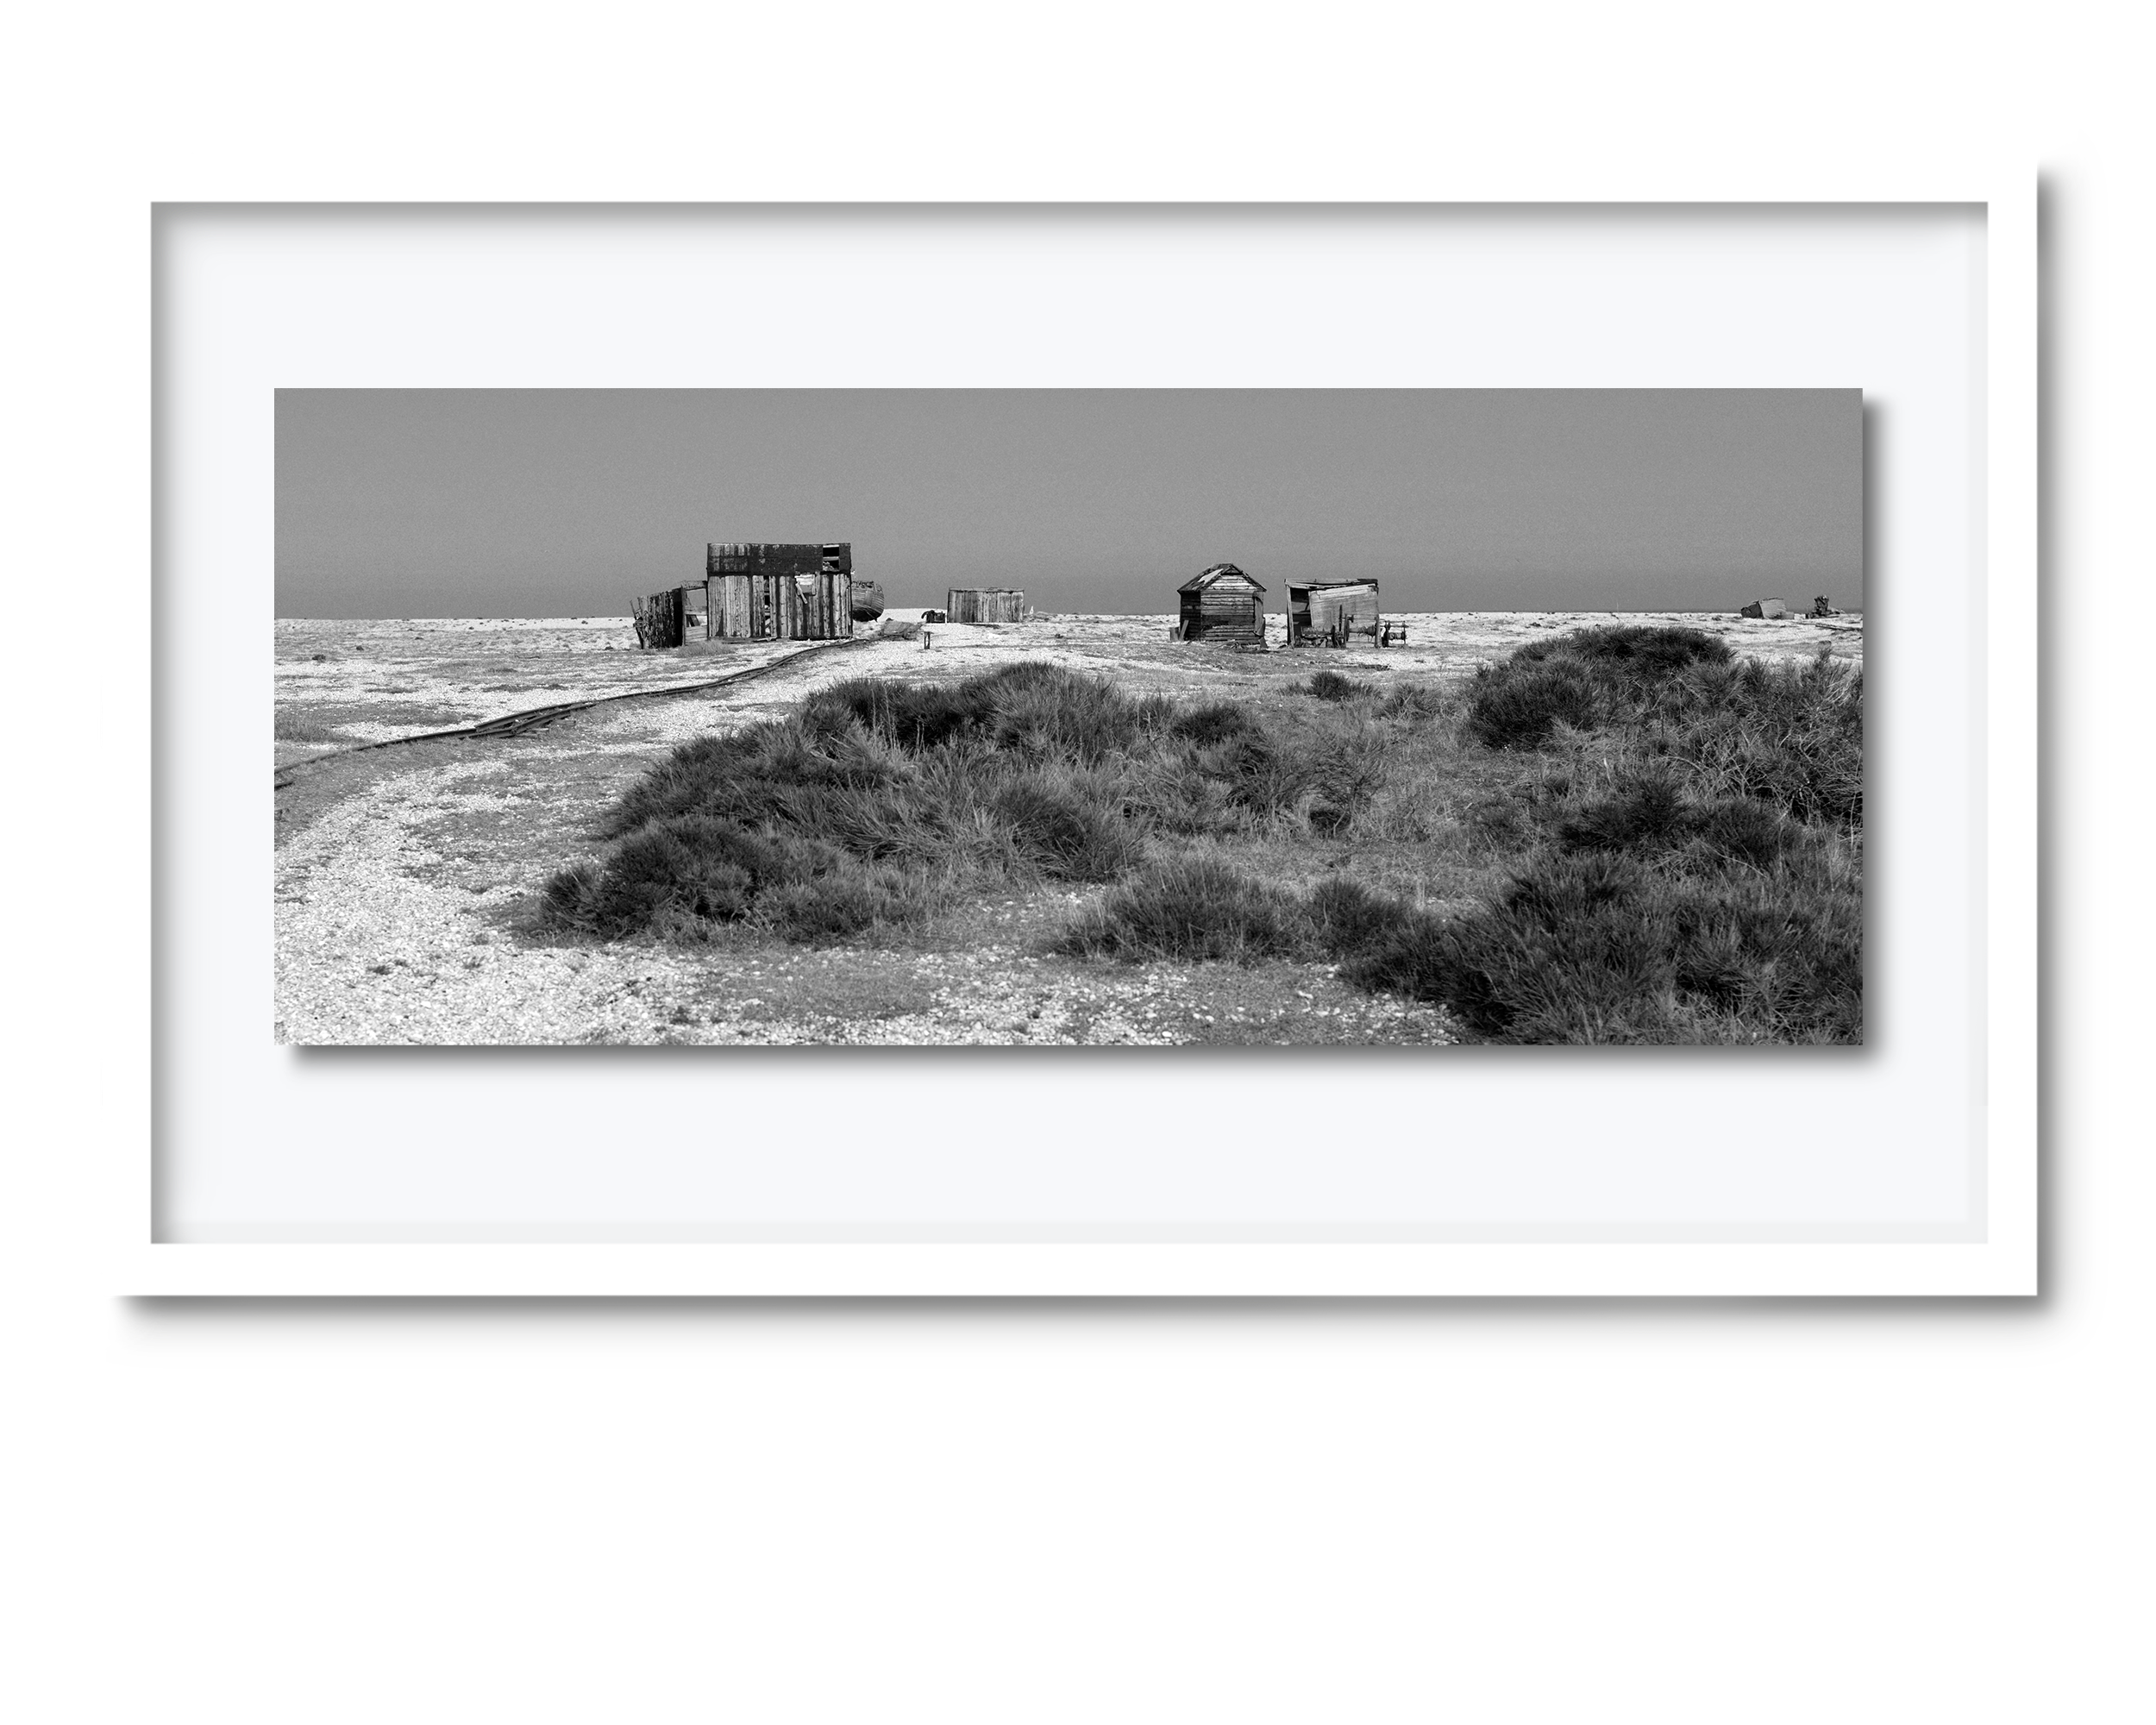 31b.david-pearce-dungeness.png